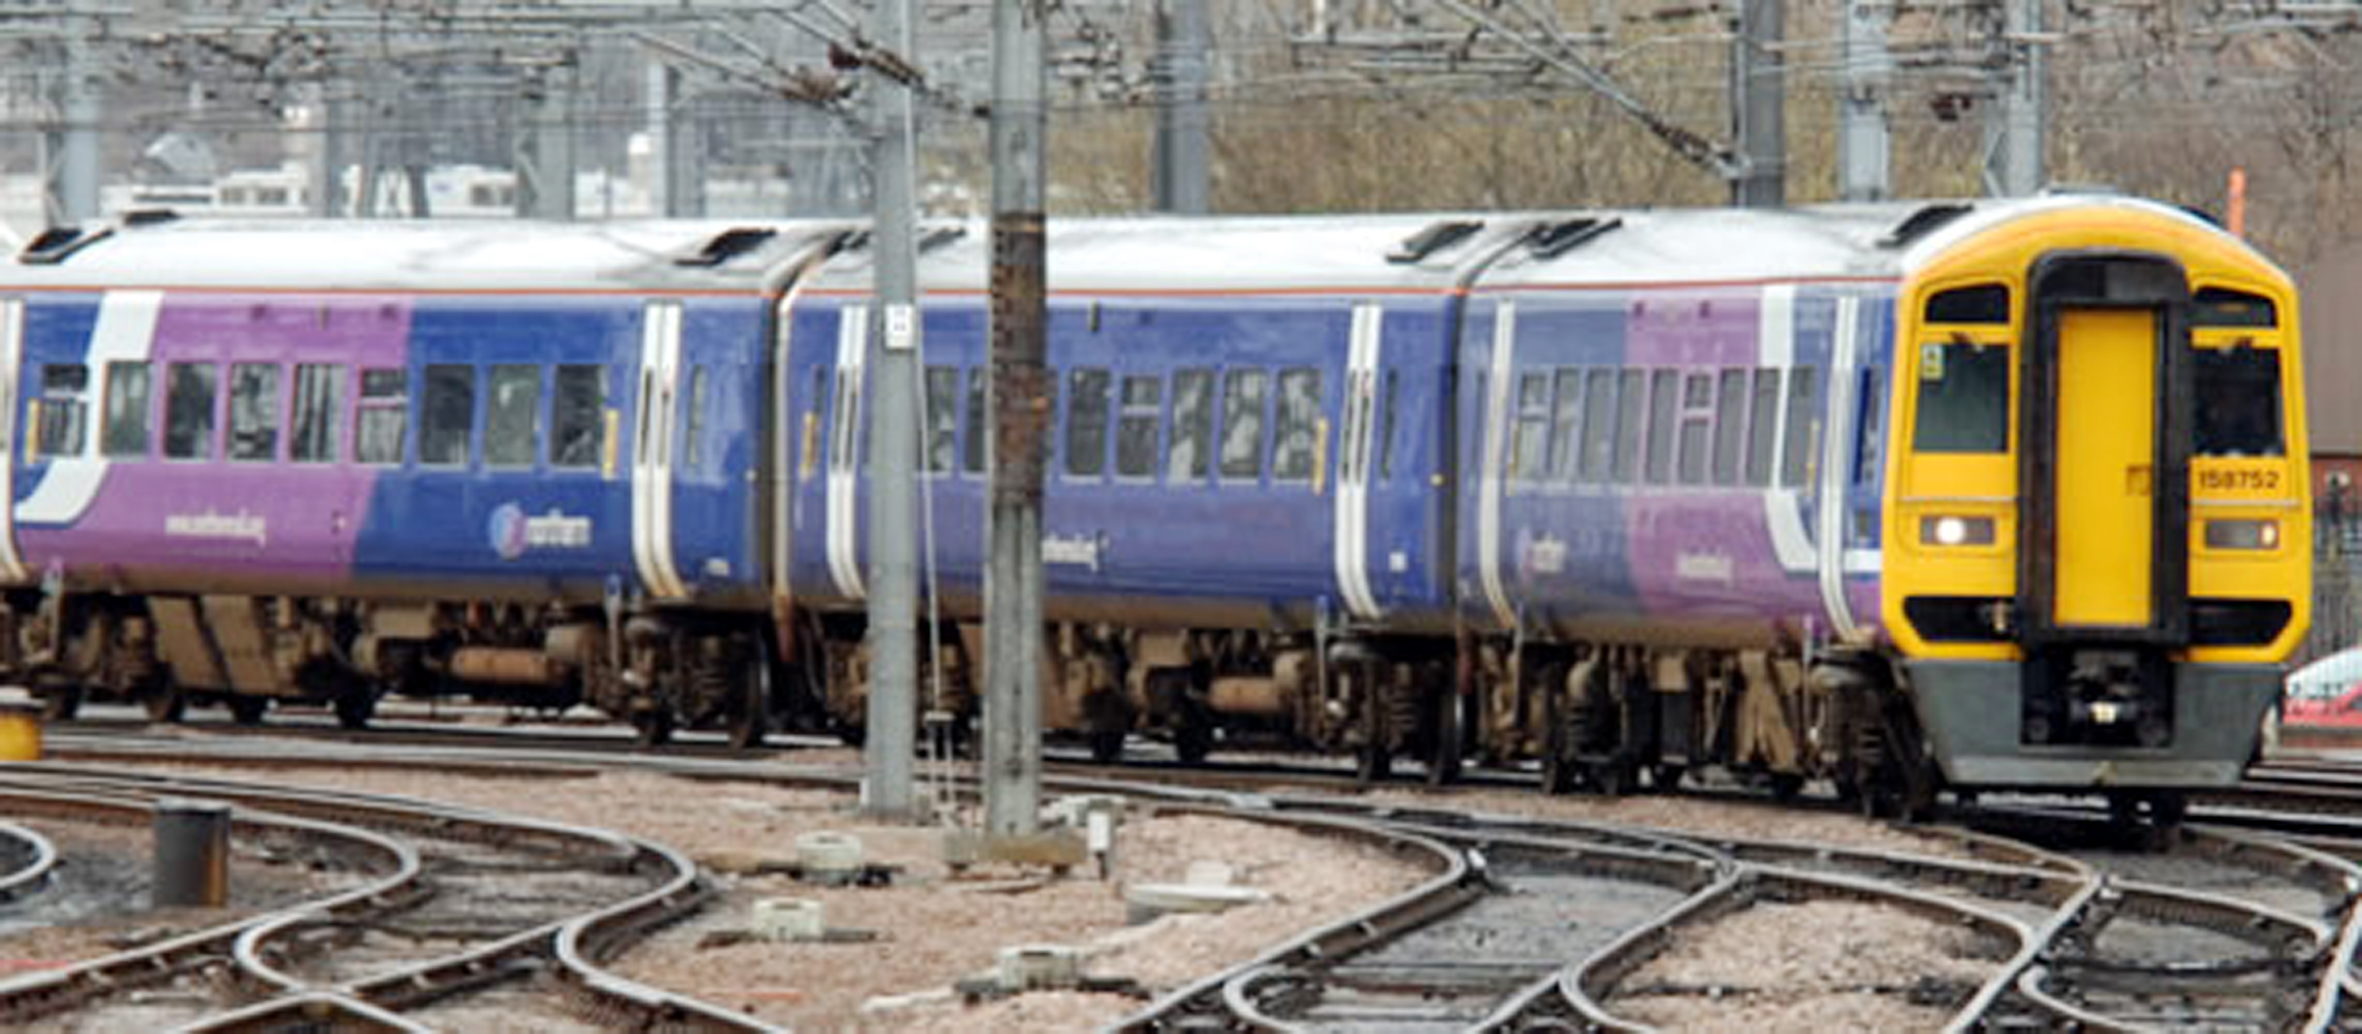 Rail strike threat as union and management clash over drivers' roles